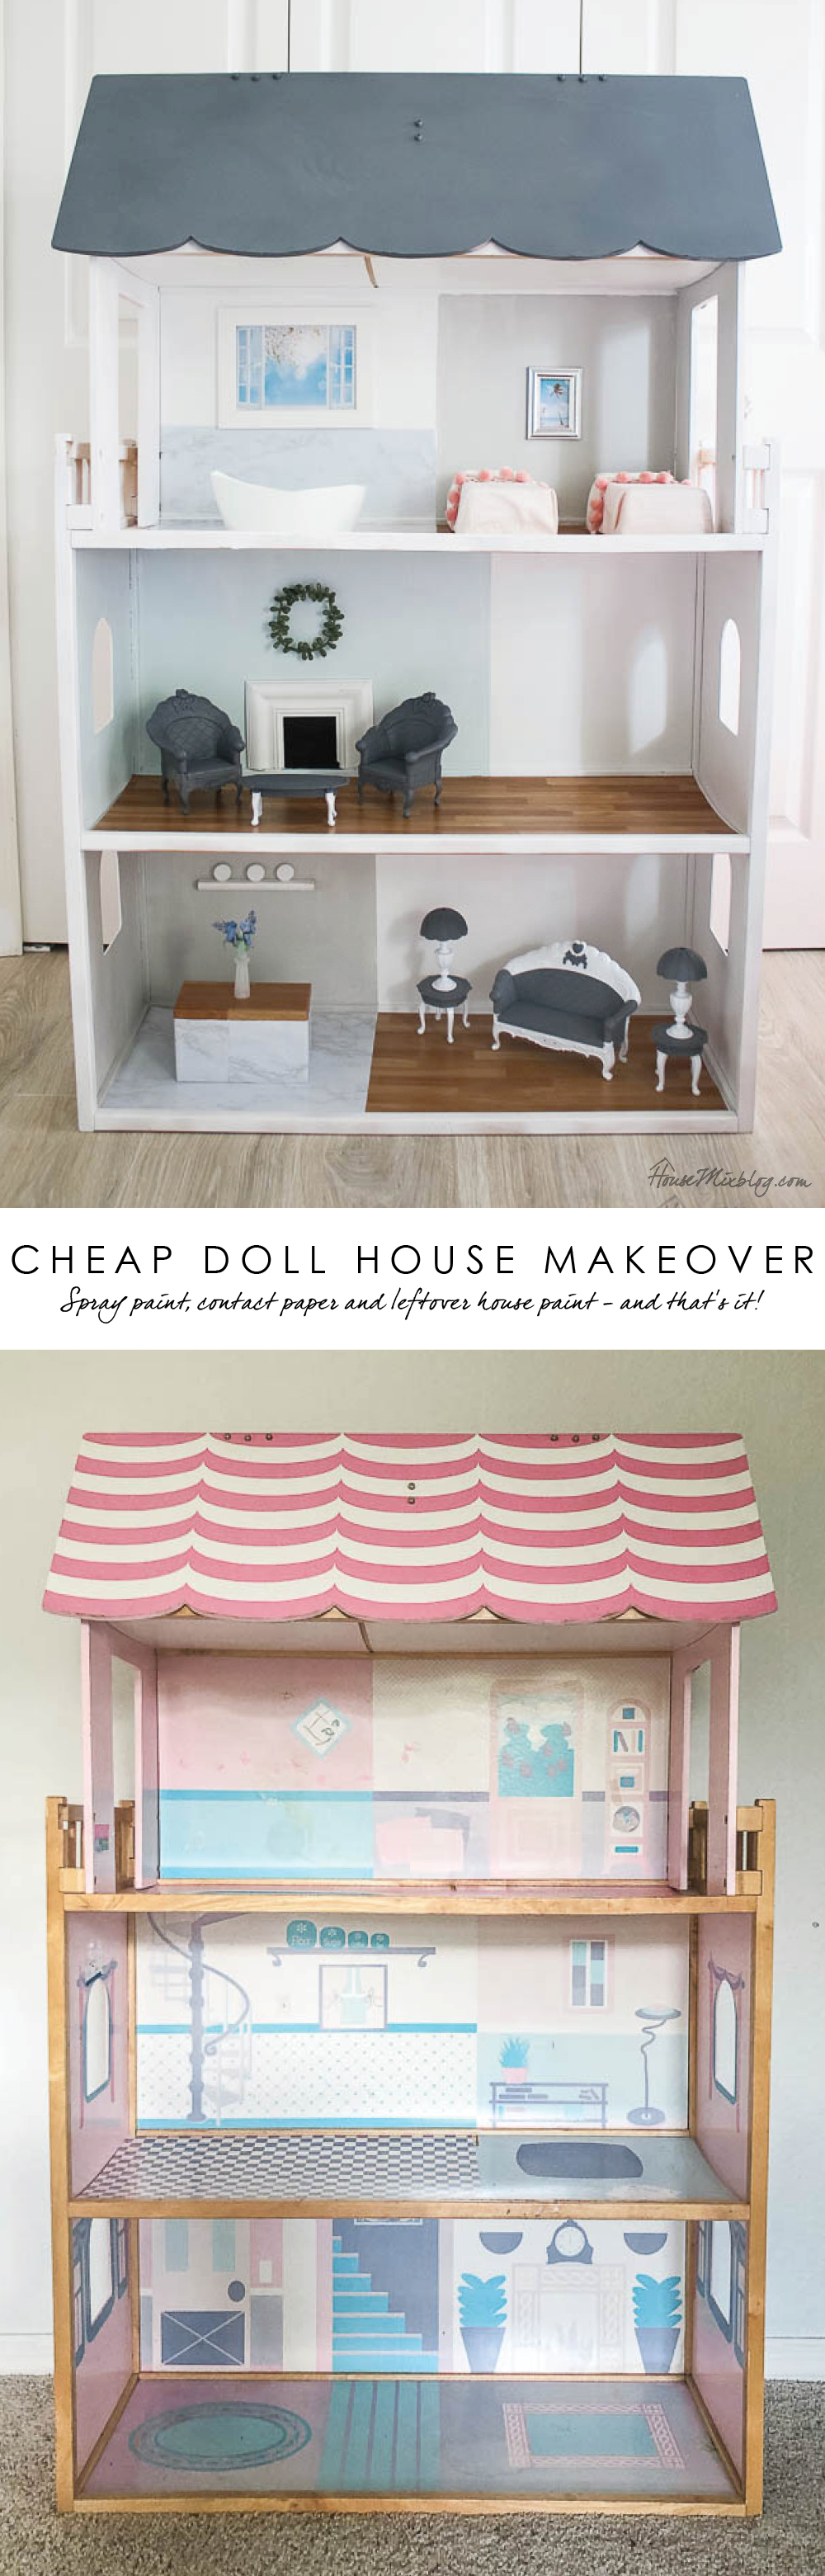 Cheap doll house makeover with spray paint and contact paper